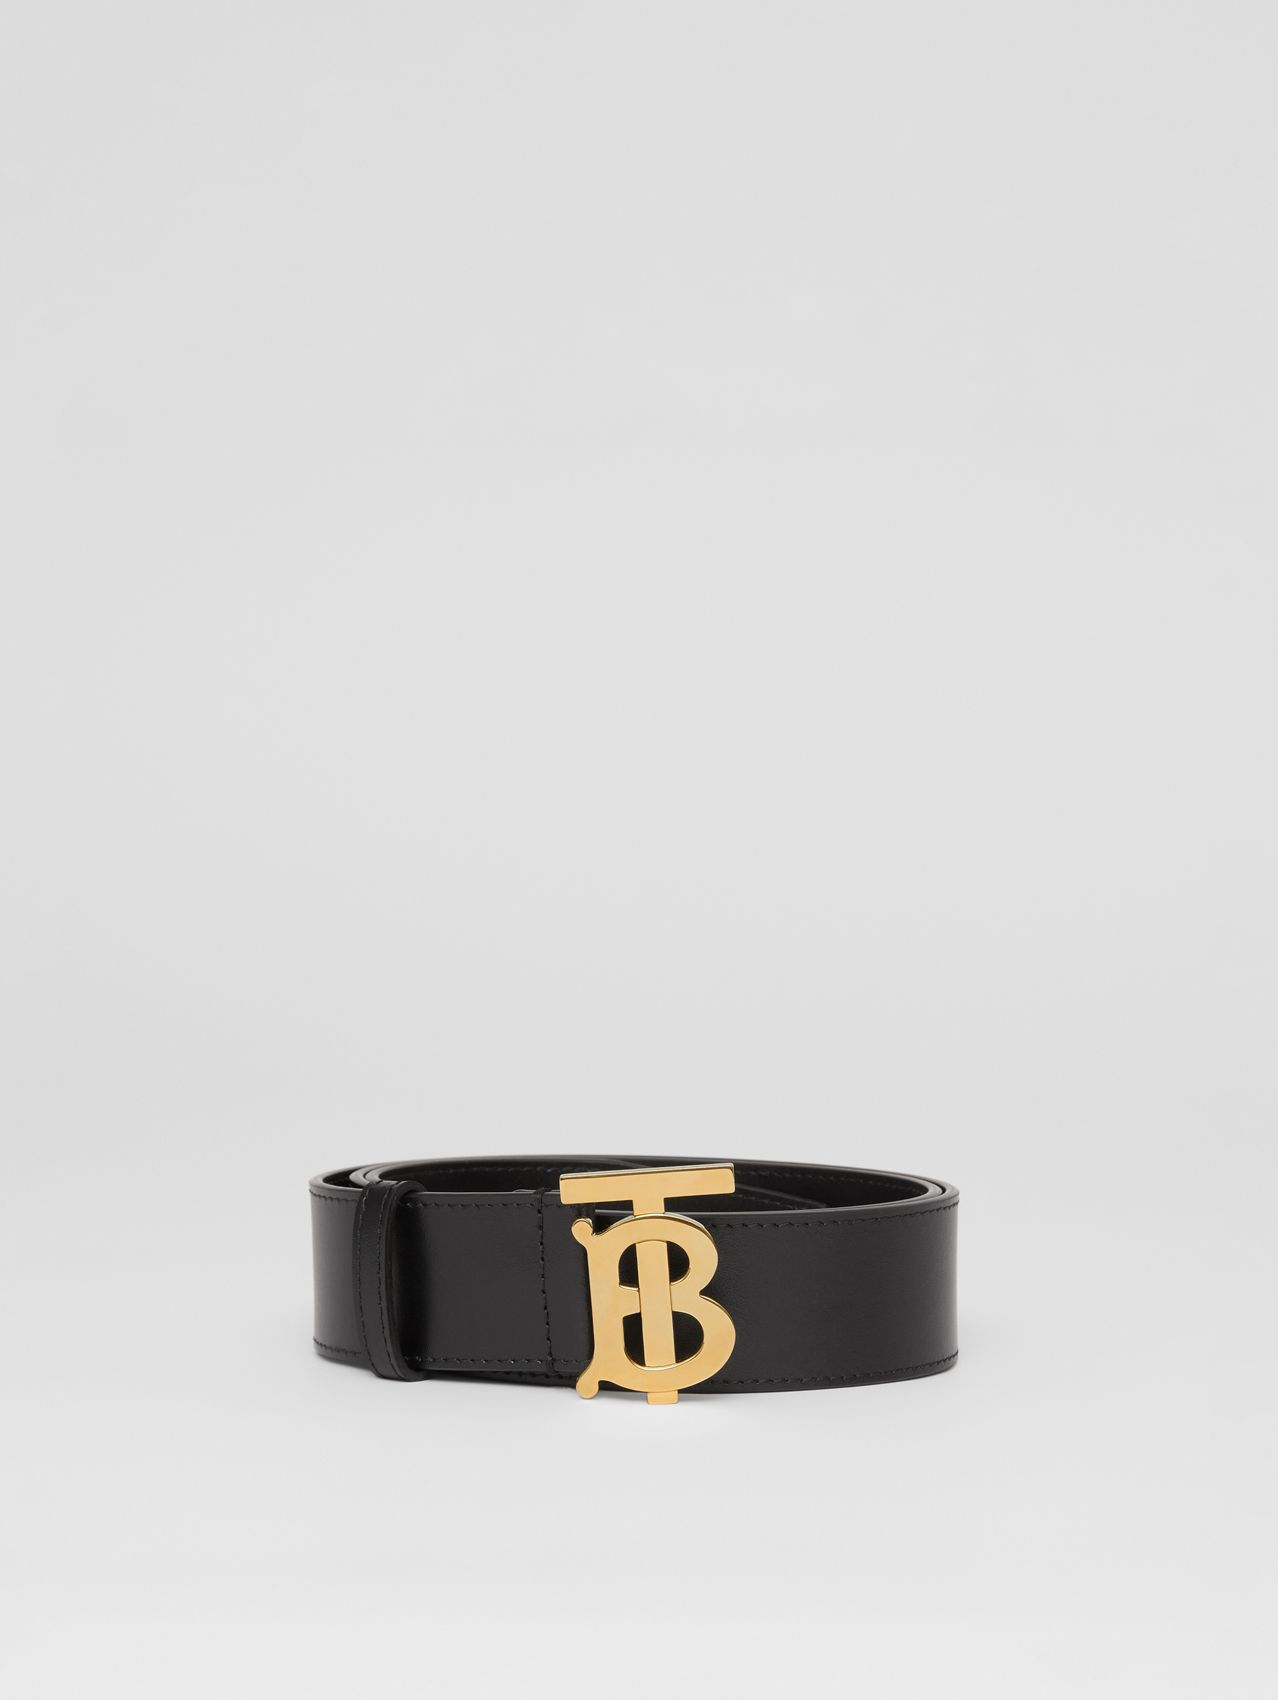 Monogram Motif Leather Belt in Black